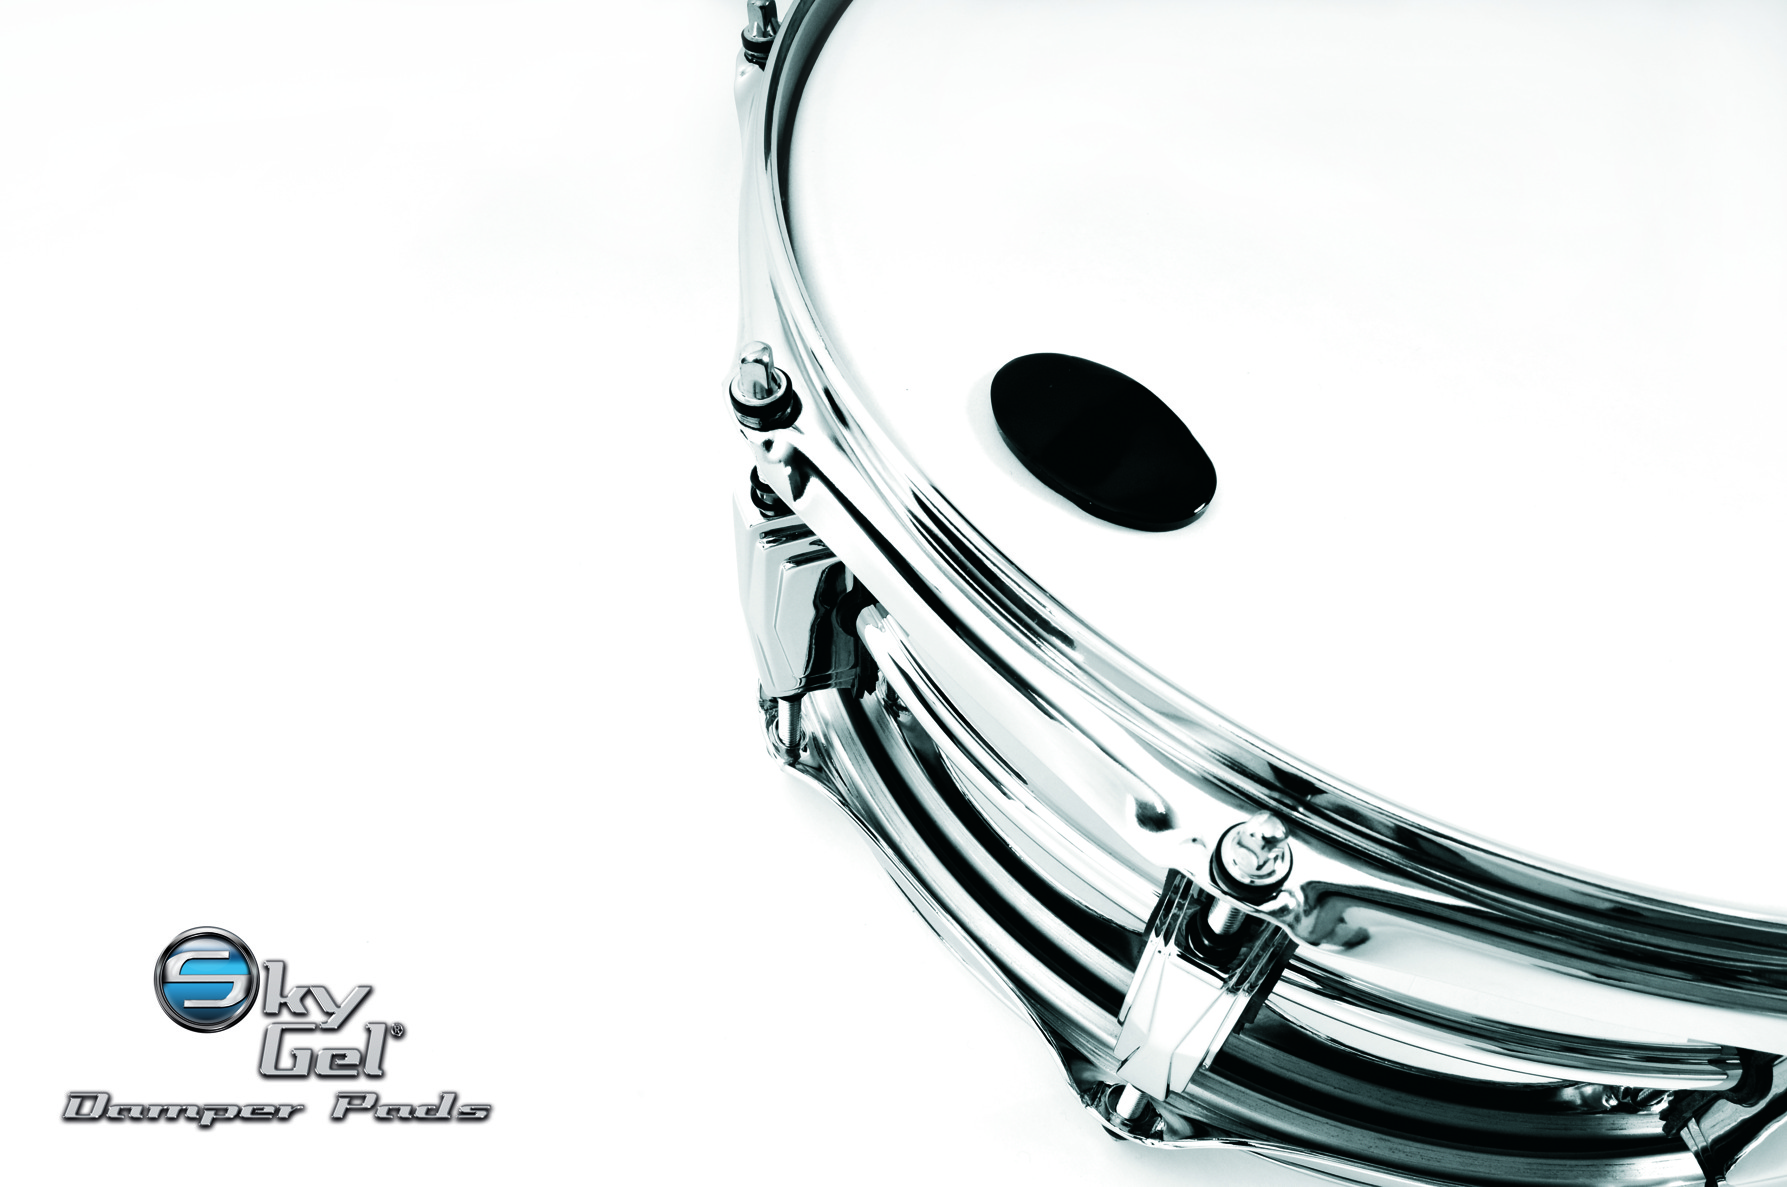 SkyGel Black on Snare